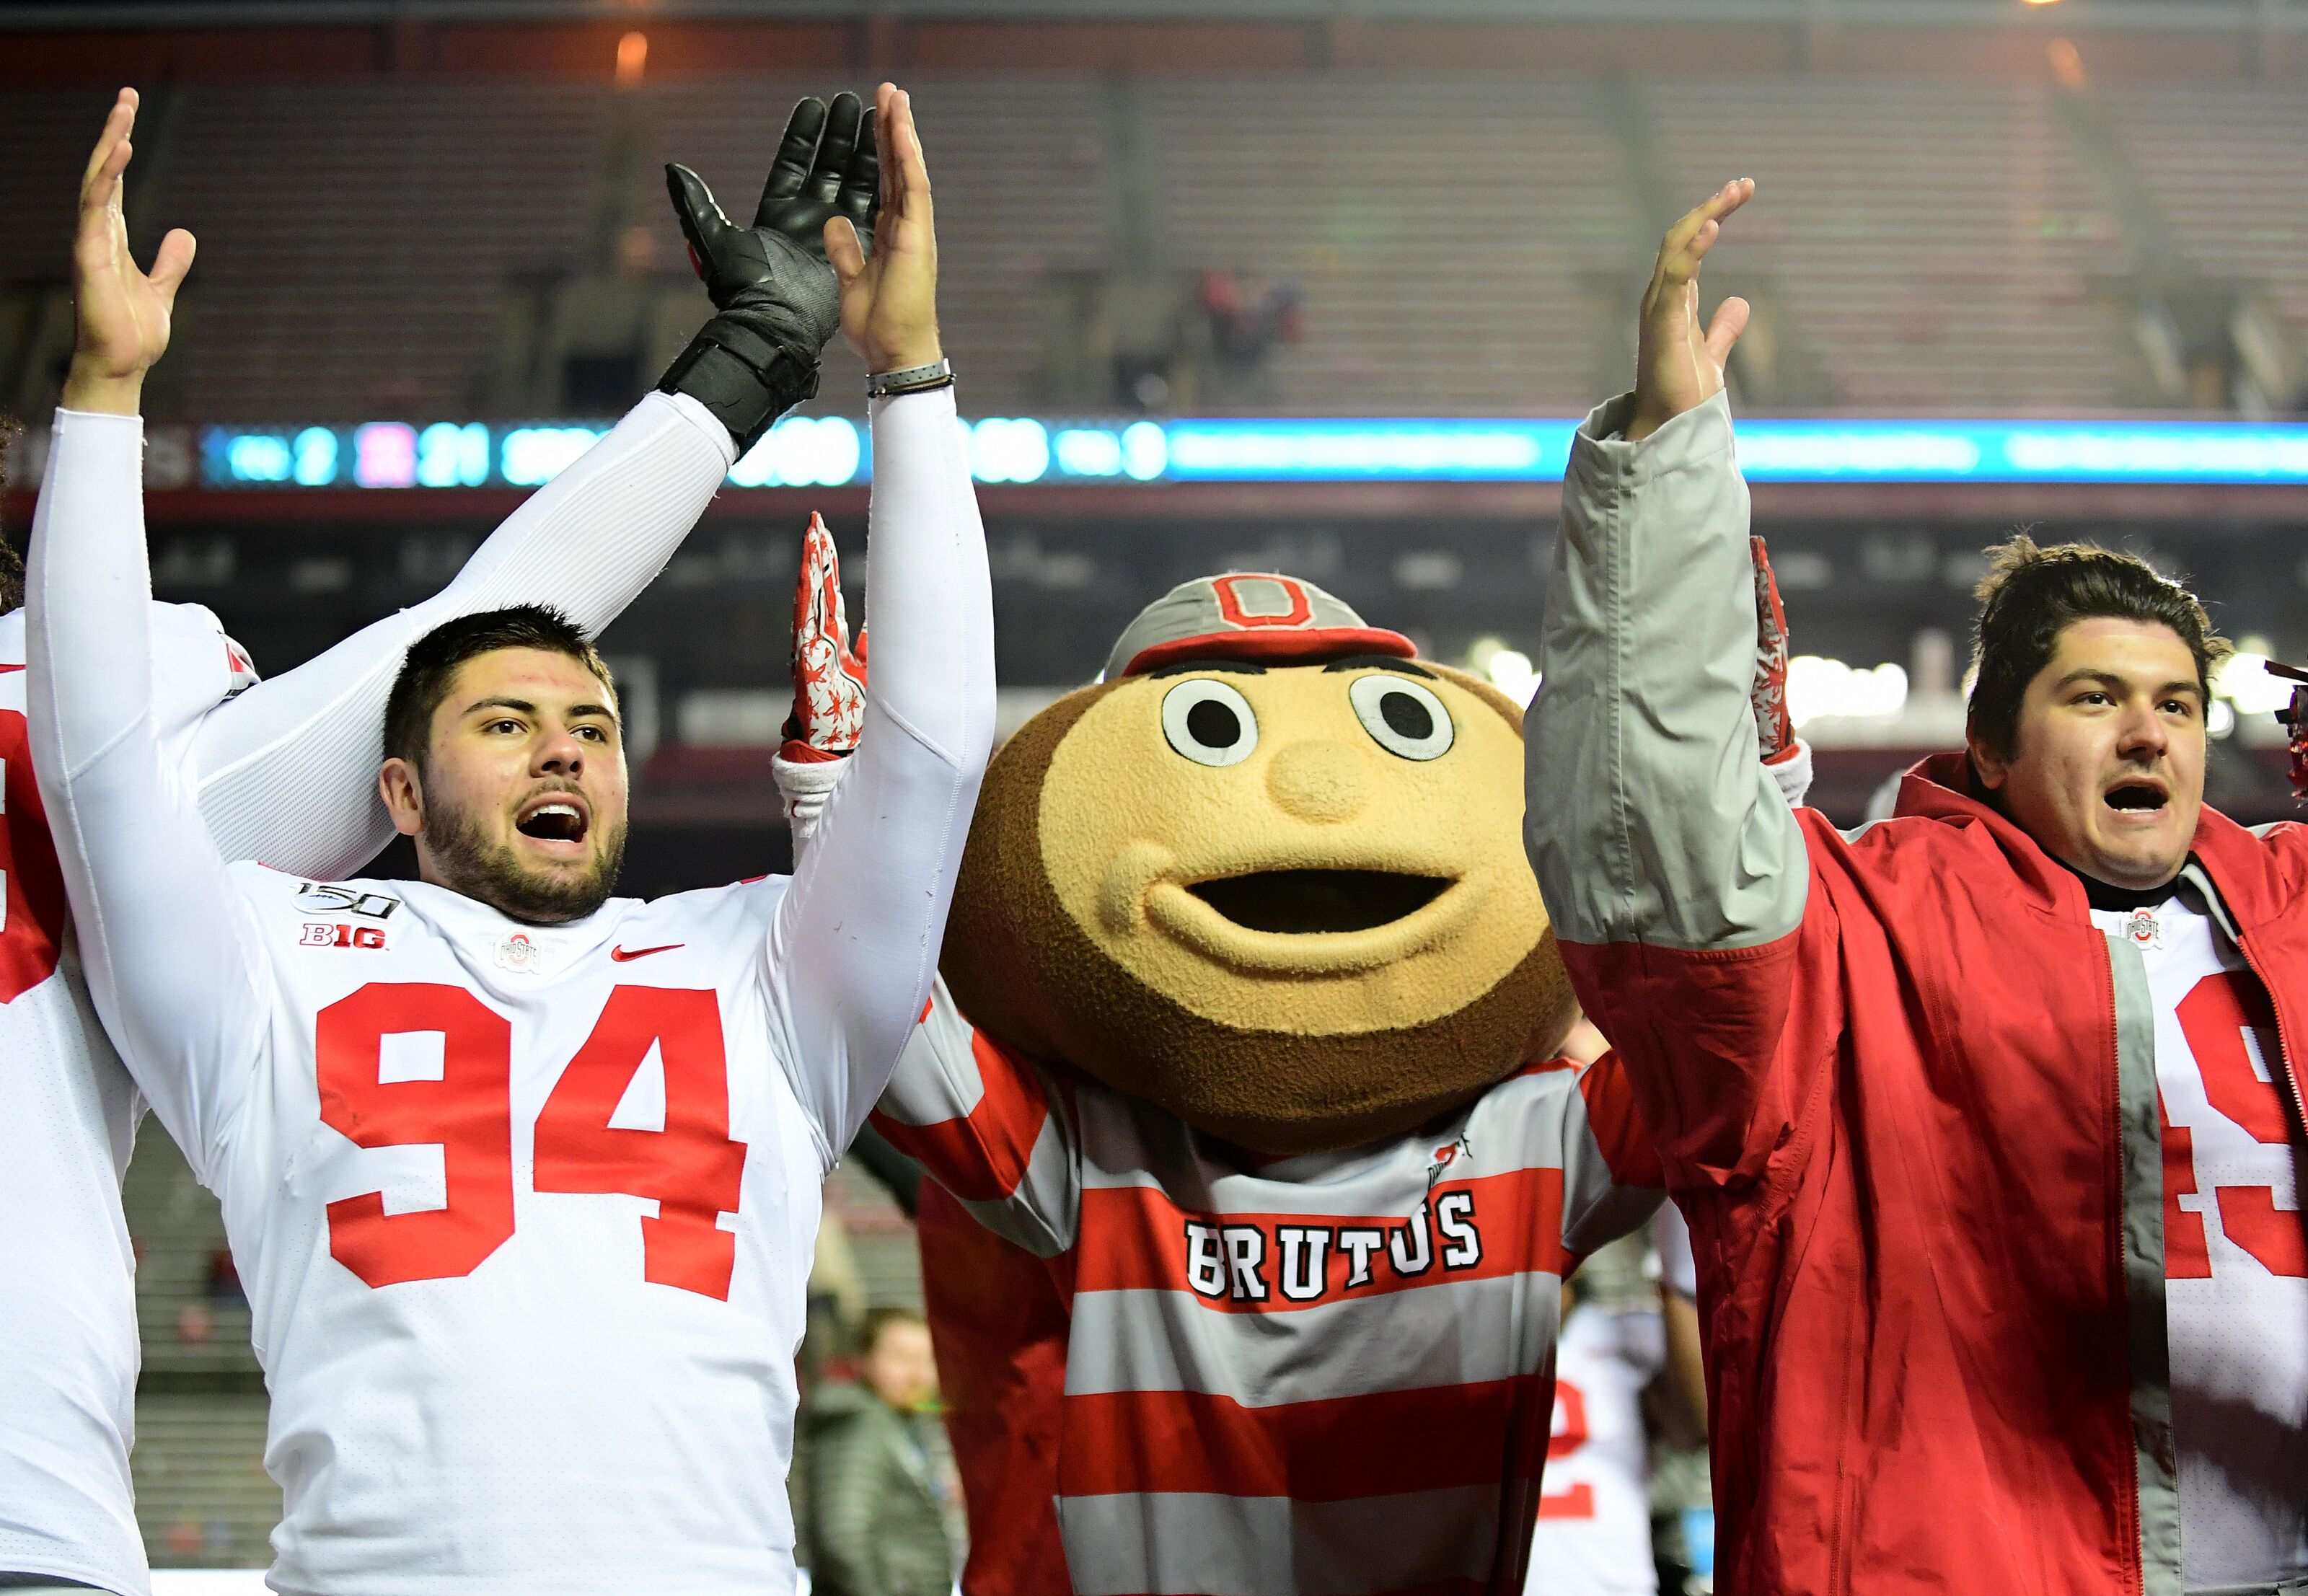 Ohio State Football: 3 questions for the Playoff Committee